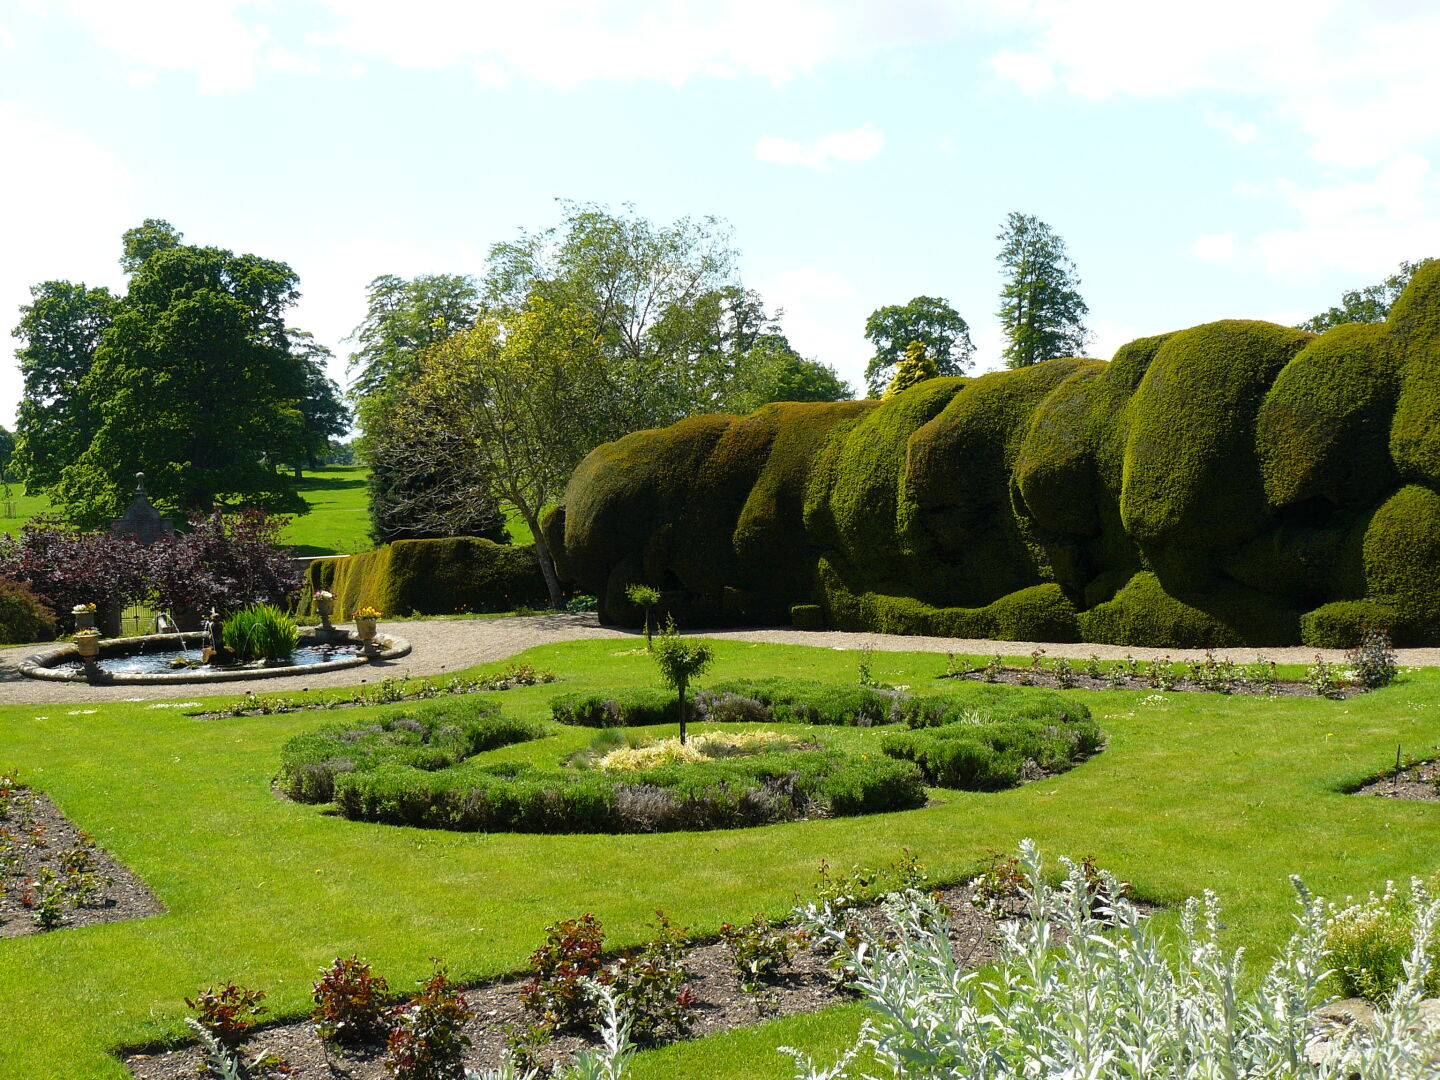 They feature two of these old yew hedges, which look really impressive.